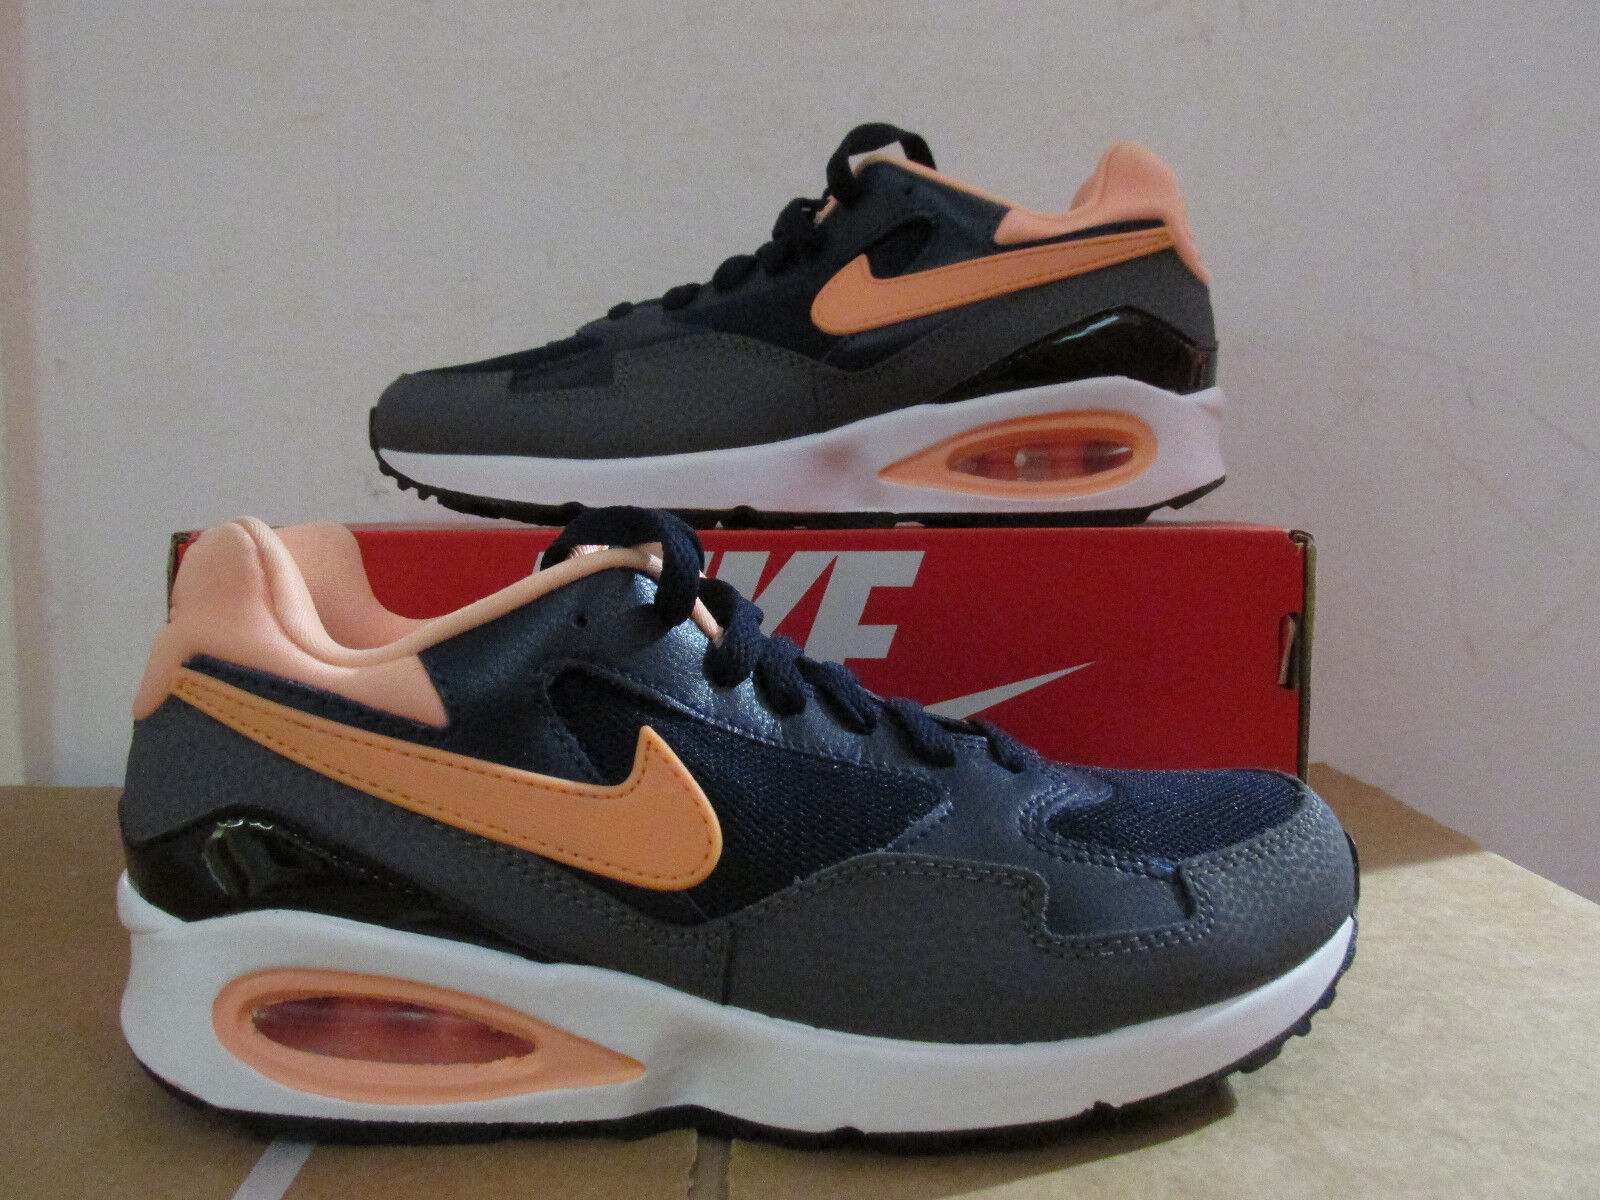 Nike Womens Air Max St Running Trainers 705003 401 Sneakers Shoes CLEARANCE